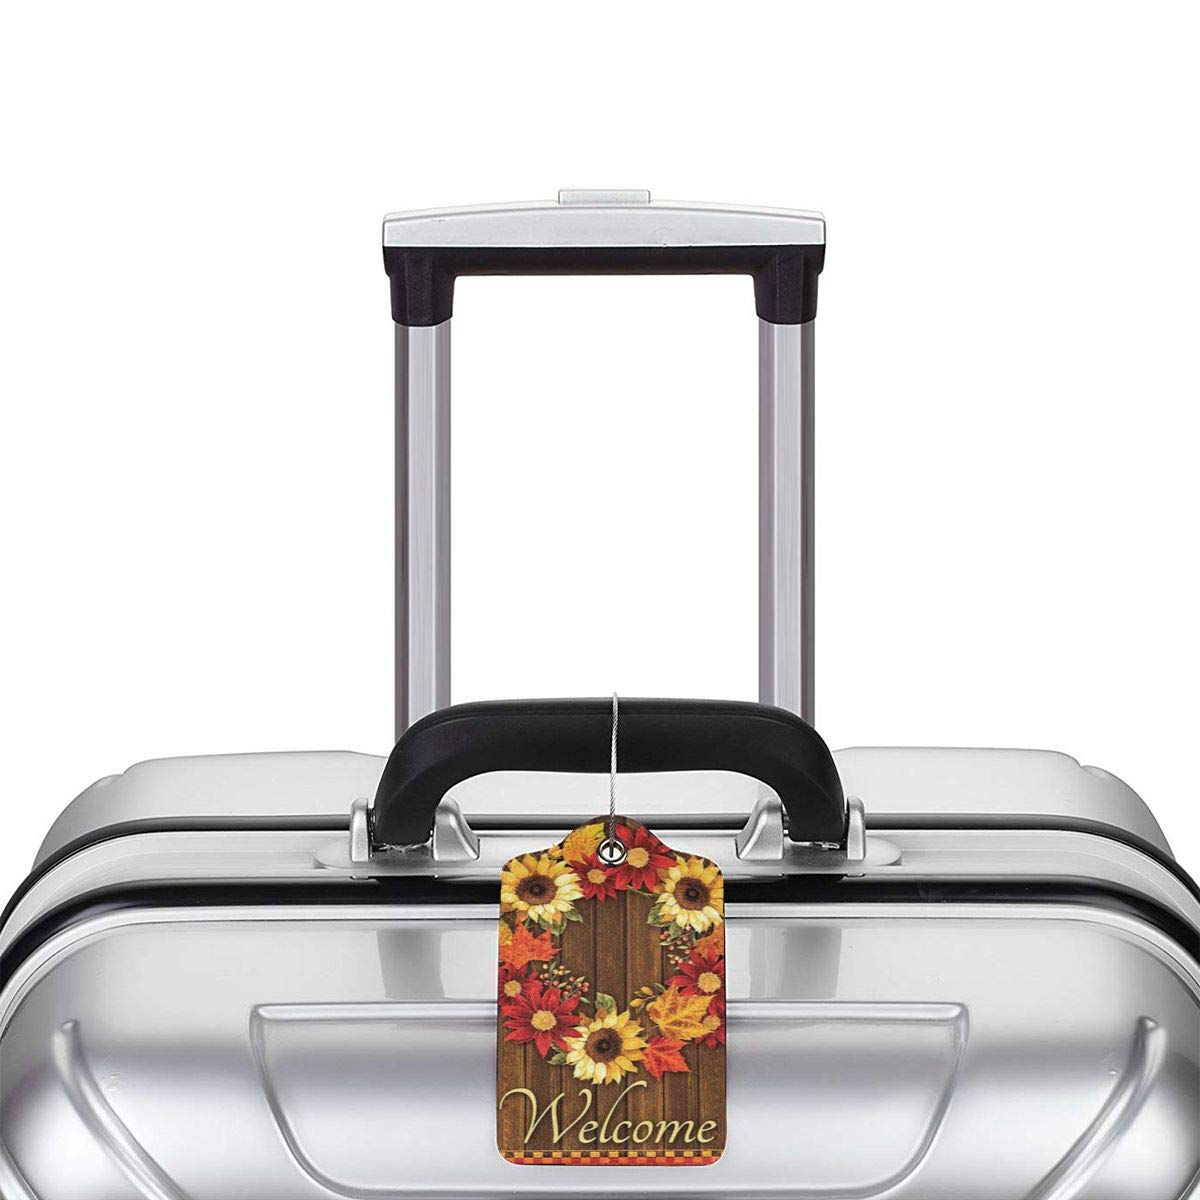 Welcome Wreath Sunflower Maple Leaves Cabin Leather Luggage Tags Personalized Flexible Custom Travel Tags With Privacy Flap